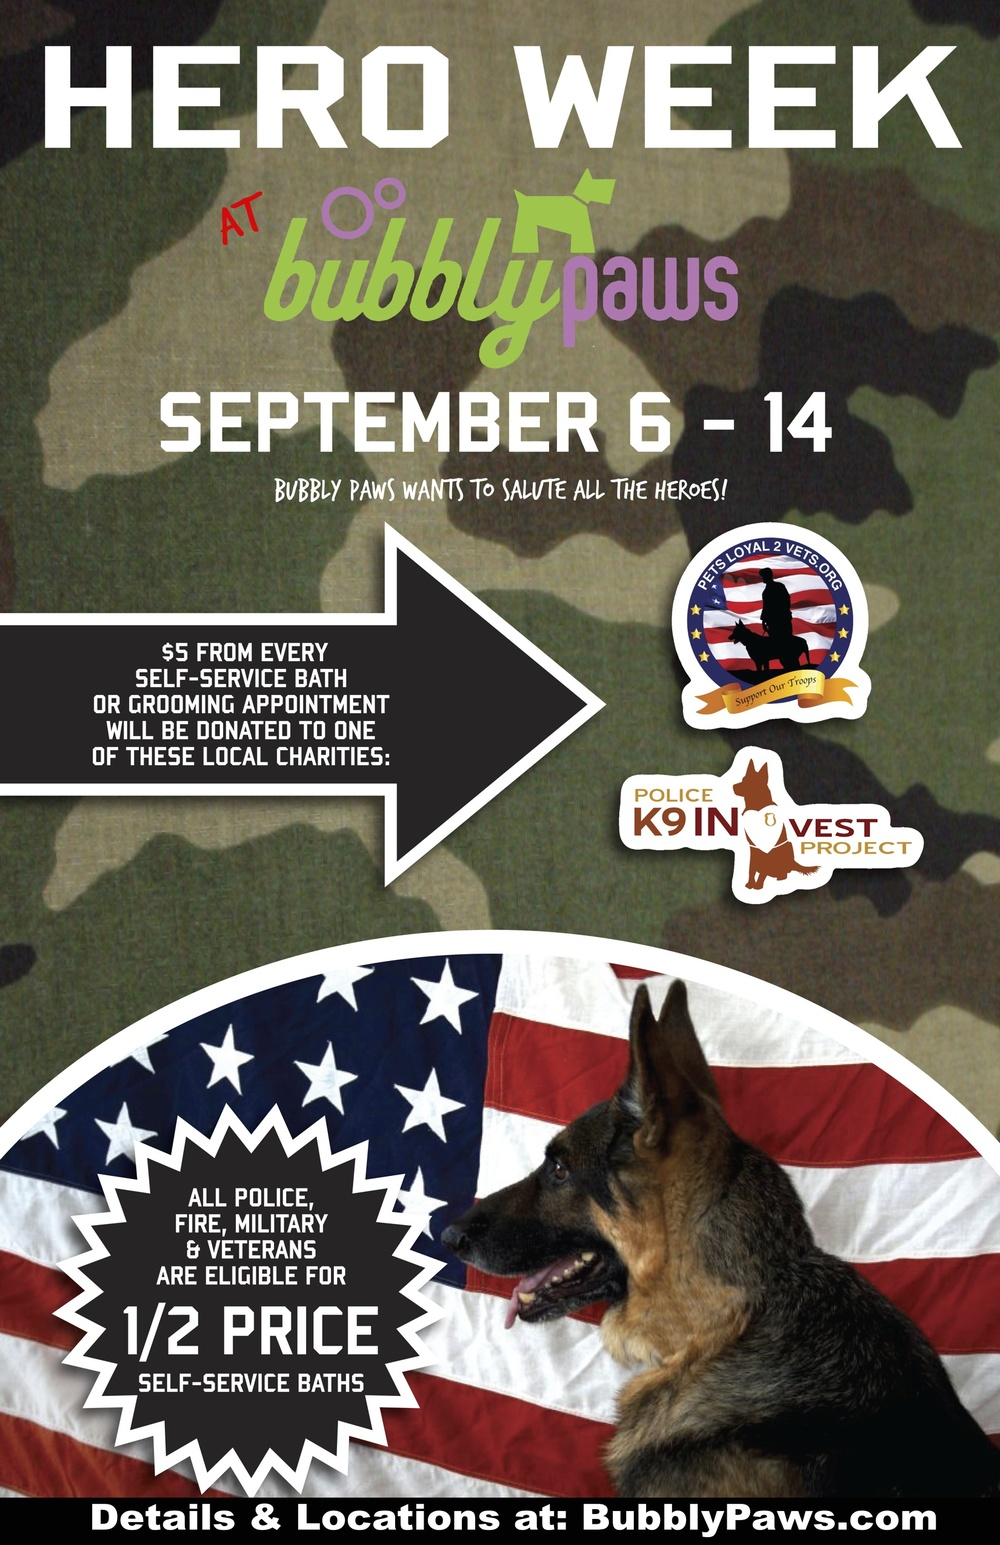 Hero Week at Bubbly Paws